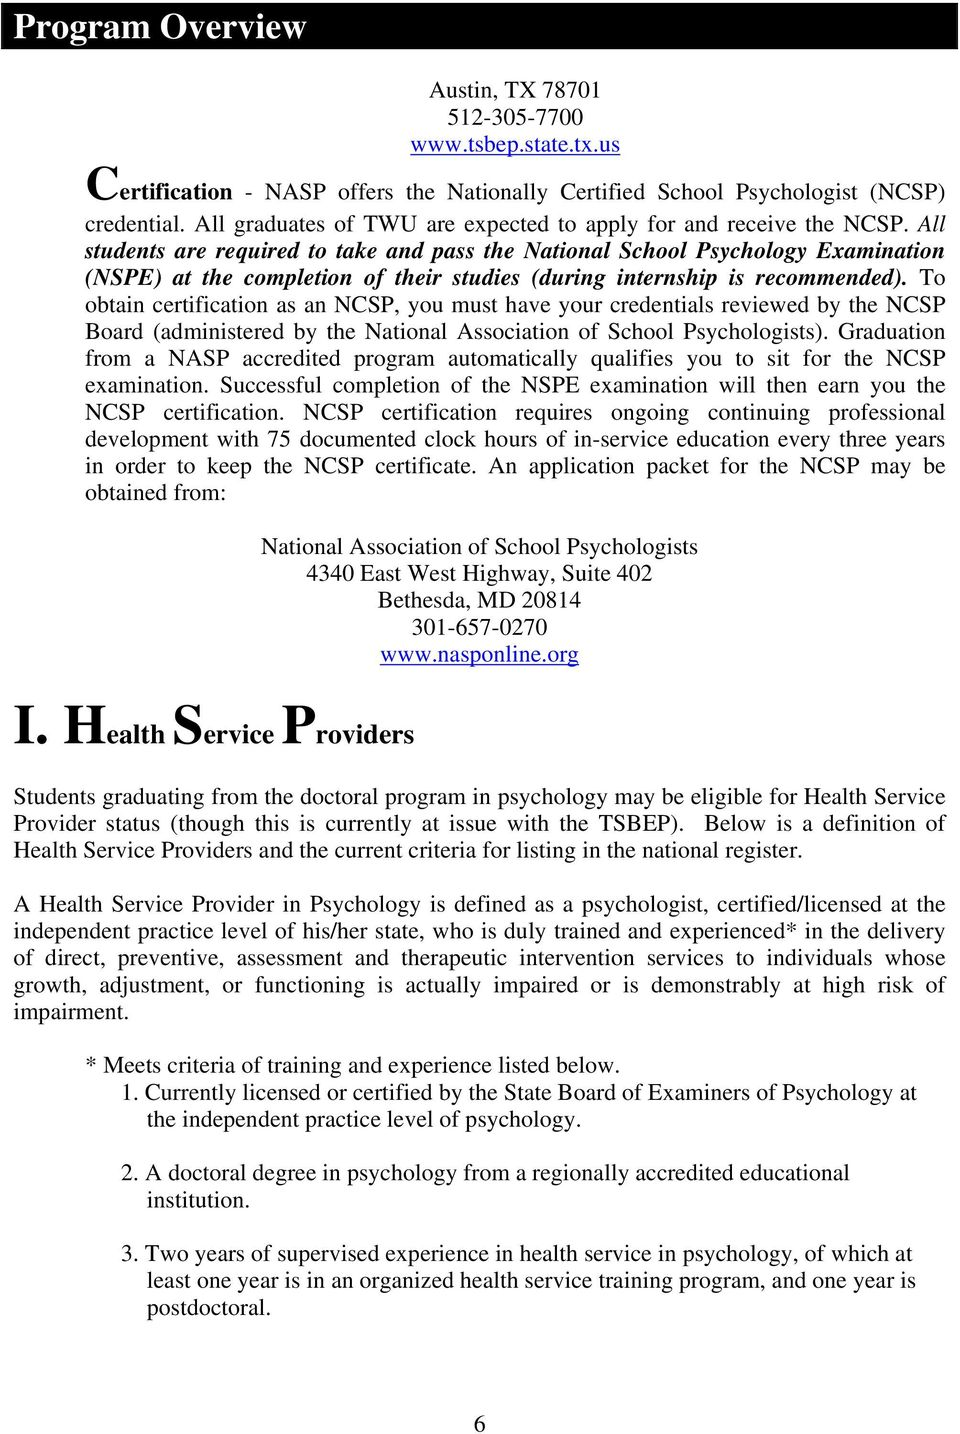 All students are required to take and pass the National School Psychology Examination (NSPE) at the completion of their studies (during internship is recommended).